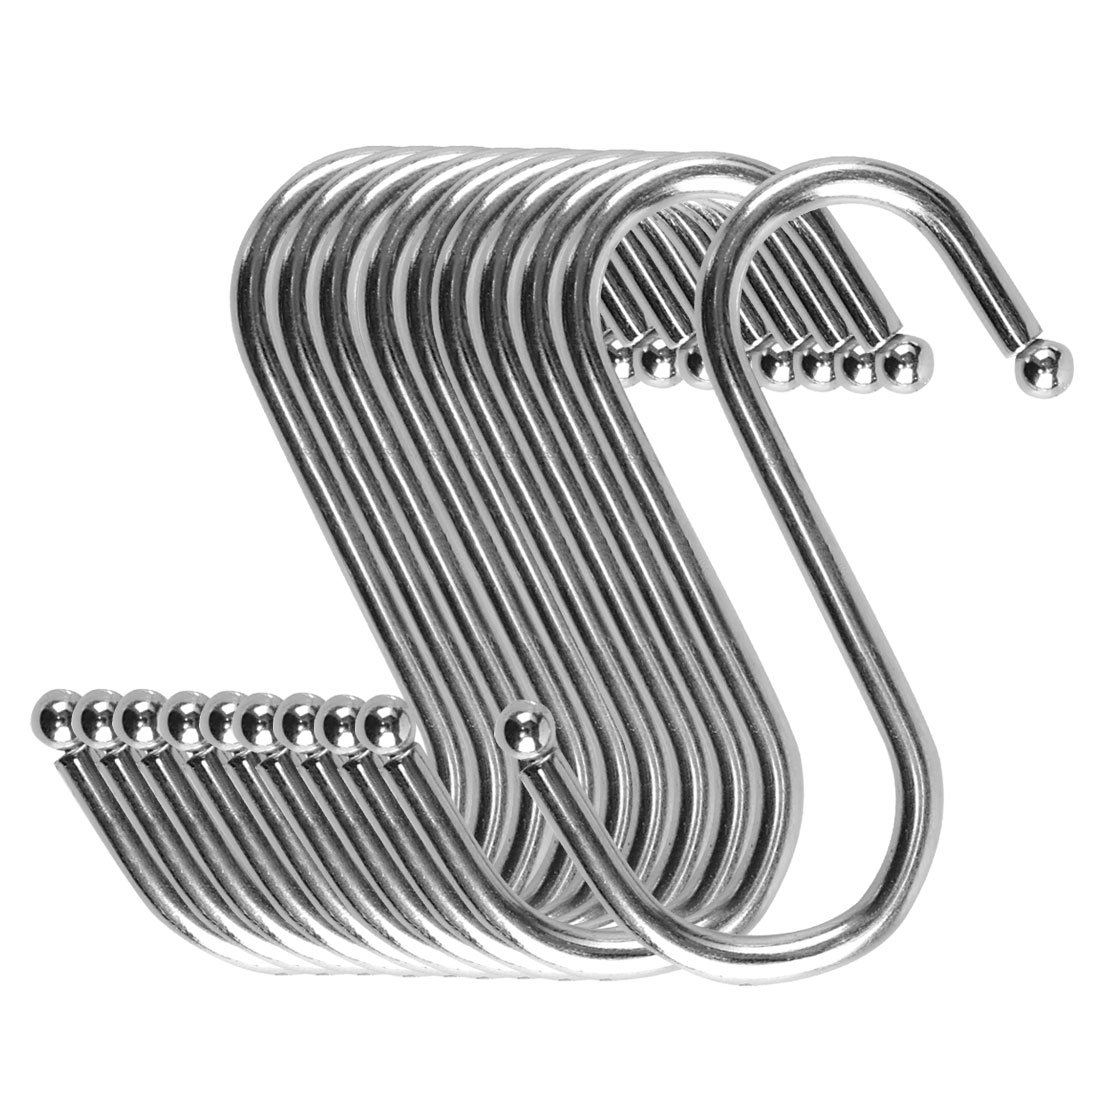 S Shape Hook Rack Stainless Steel for Kitchenware Clothes Towel Holder 10 Pack